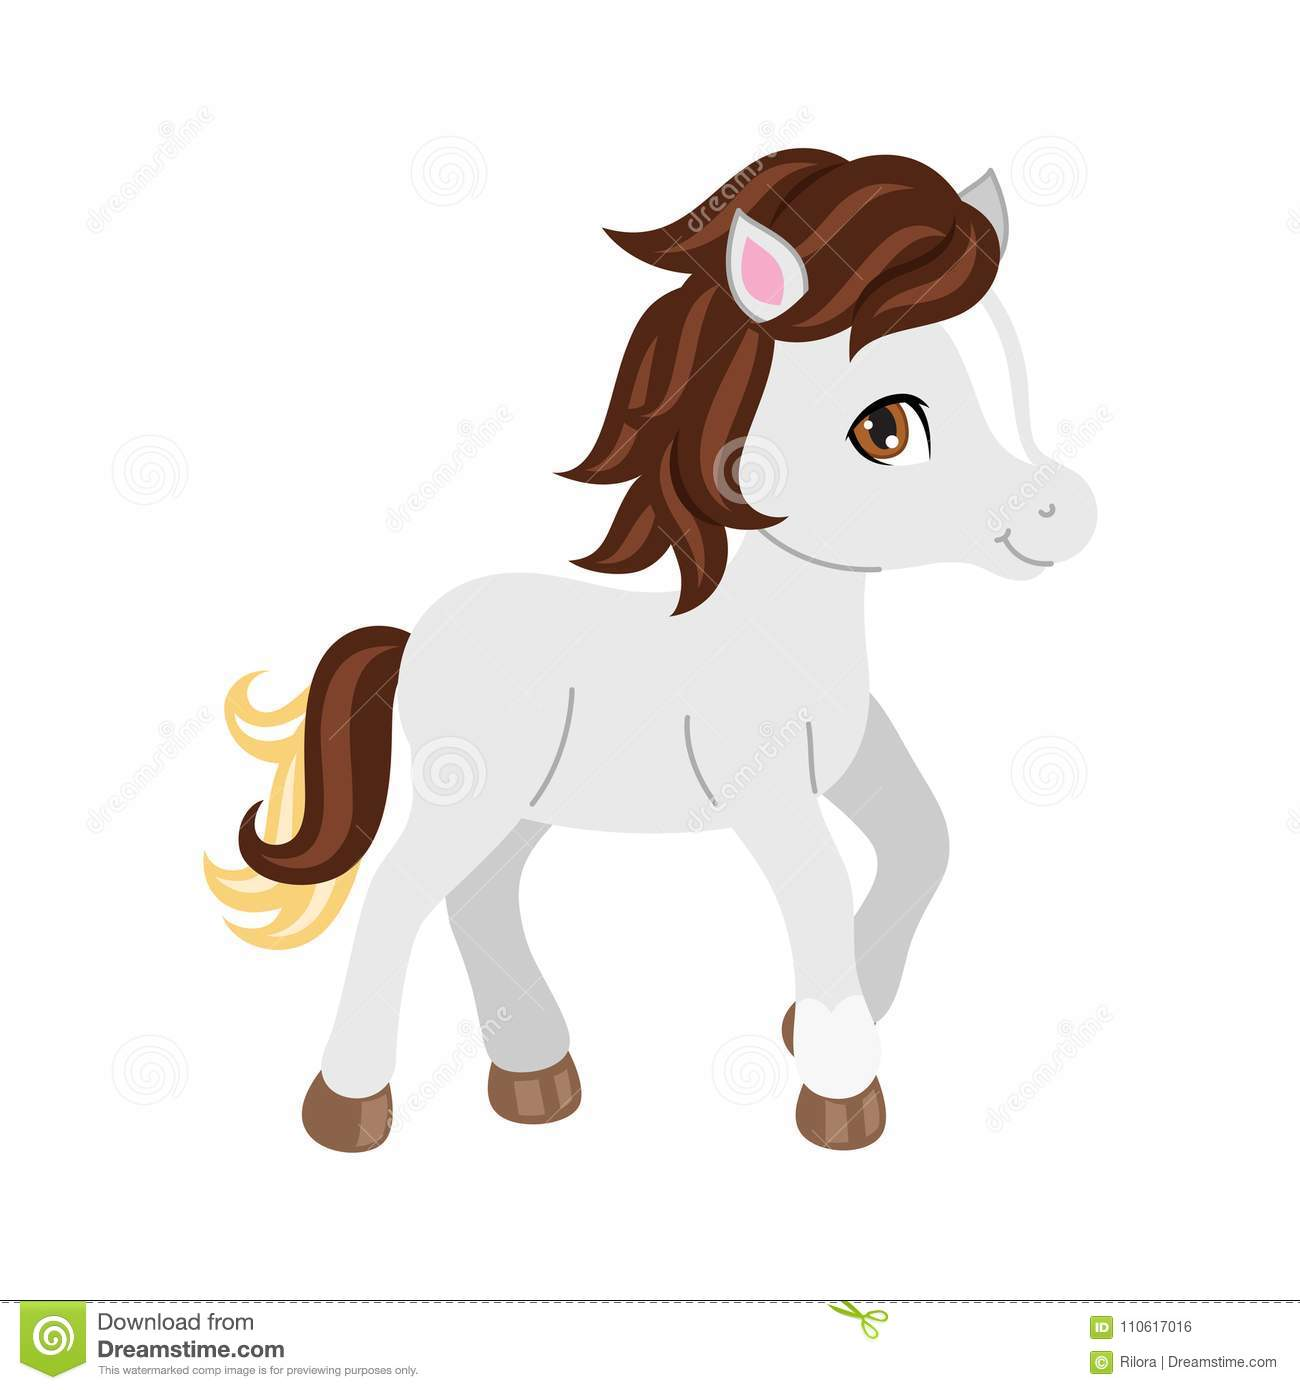 Adorable Cartoon Horse Character Stock Vector Illustration Of Clipart Kids 110617016